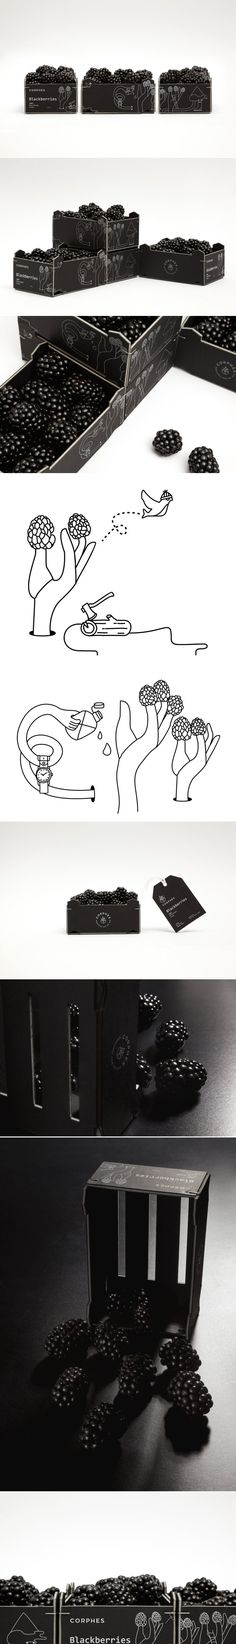 These Blackberries Come With Wonderfully Funky Illustrations — The Dieline | Packaging & Branding Design & Innovation News